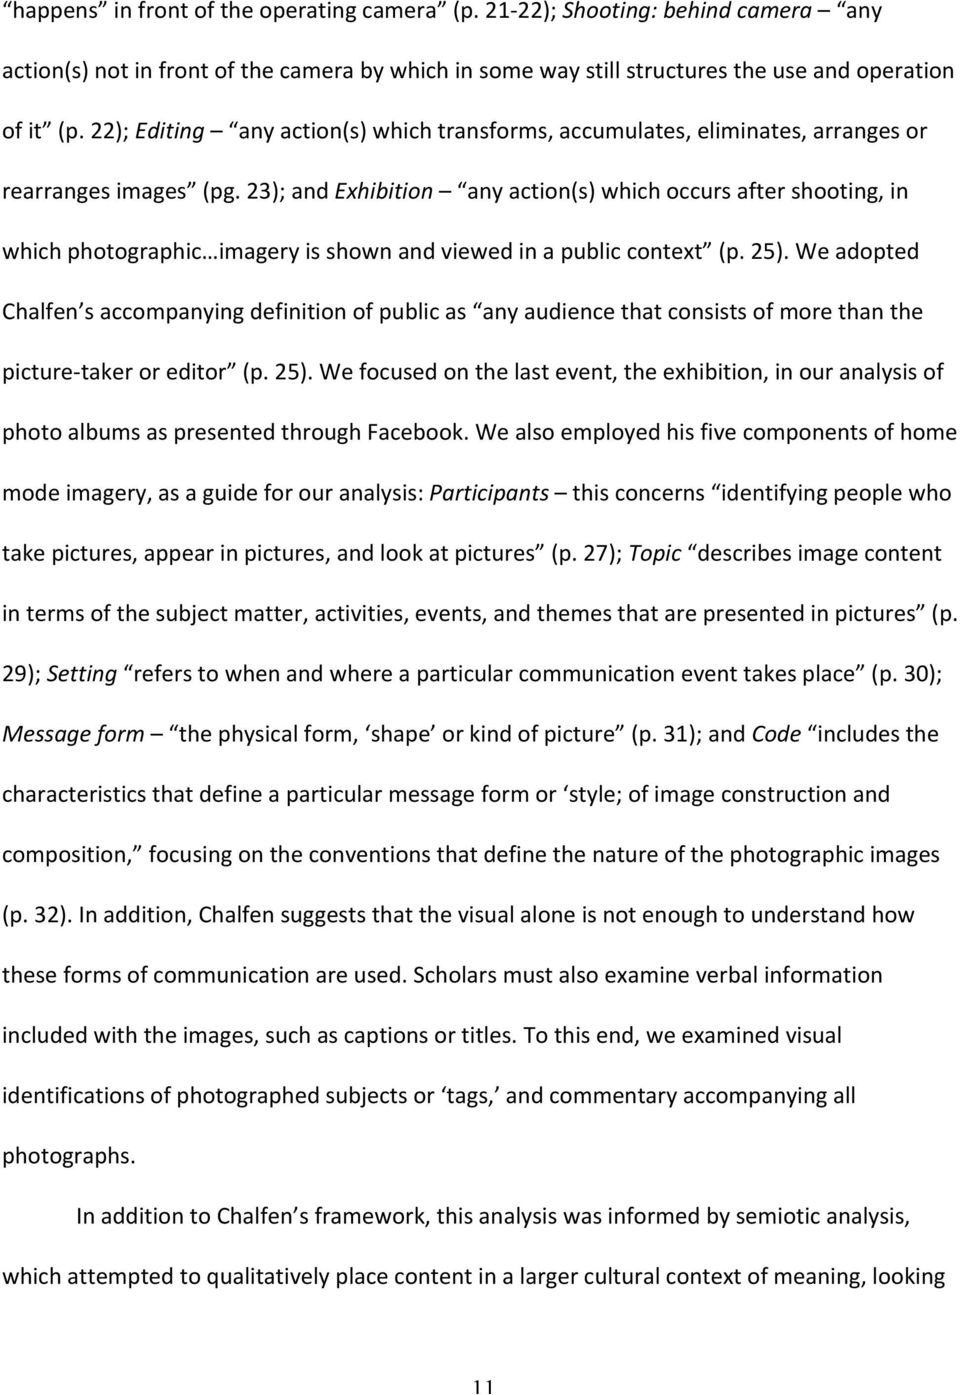 23); and Exhibition any action(s) which occurs after shooting, in which photographic imagery is shown and viewed in a public context (p. 25).